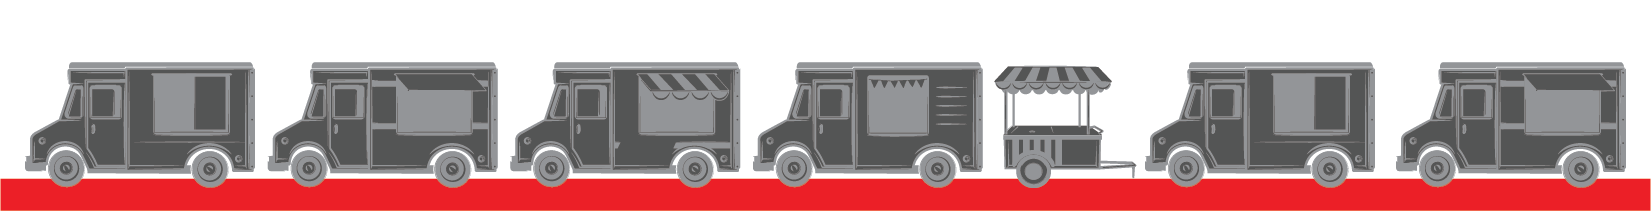 TRUCK_BANNER.png